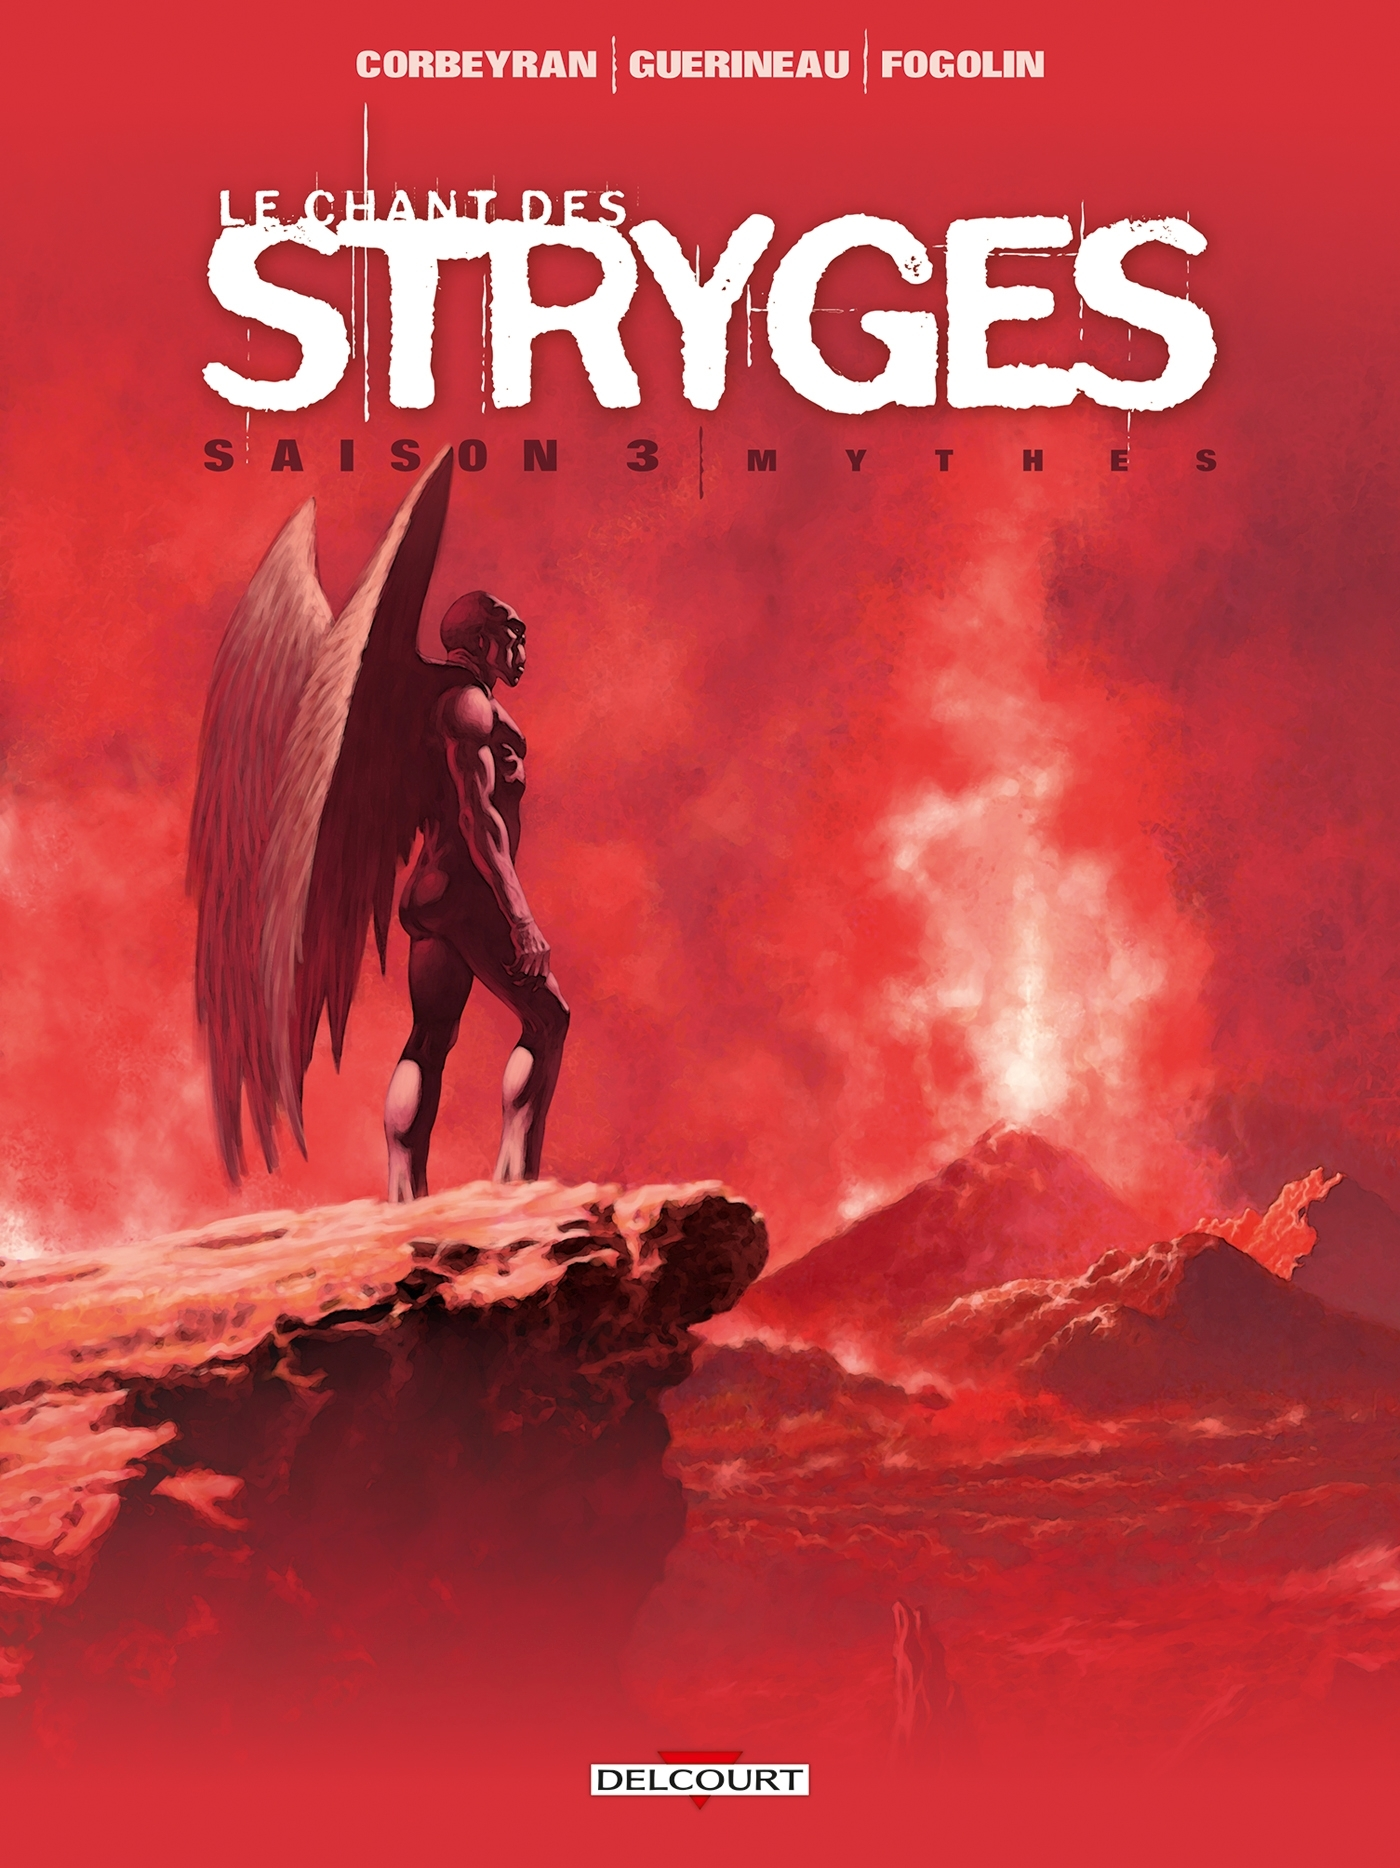 CHANT DES STRYGES SAISON 3 - 18 - MYTHES